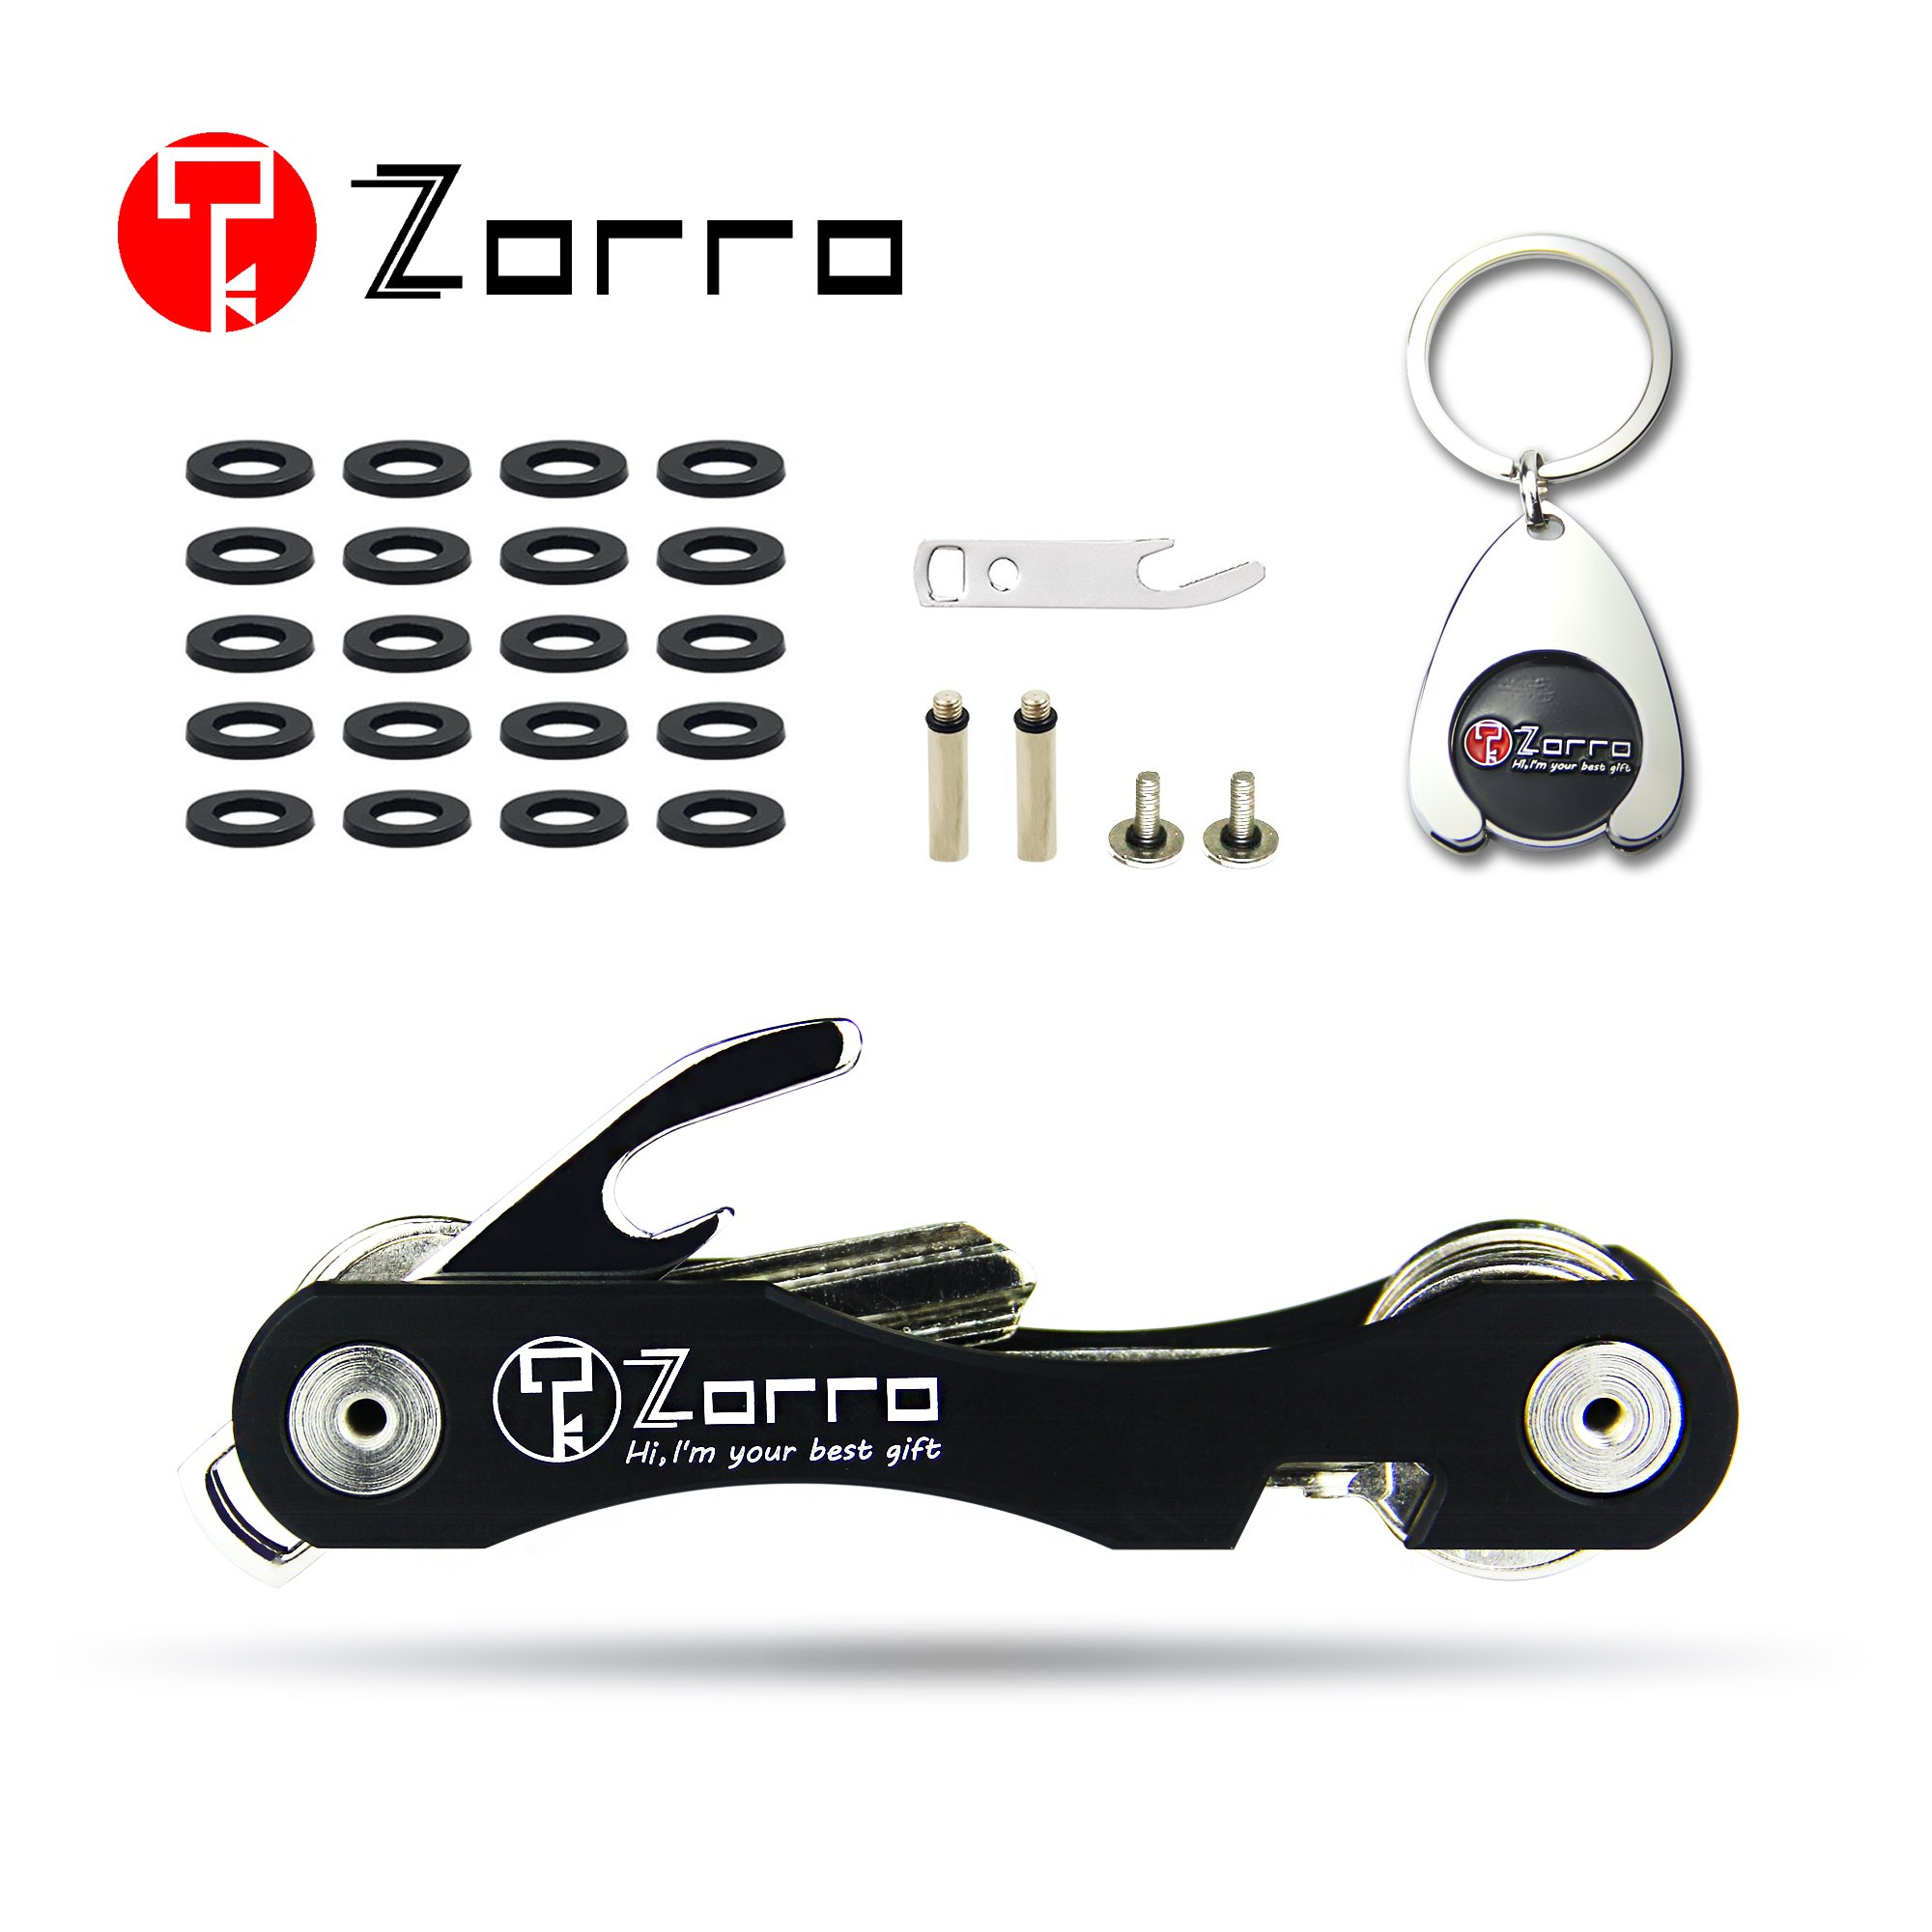 Zorro Smart Compact Key Holder Keychain - Smart Pocket Organizer Up To 18 Keys -Includes Bottle Opener,Carbiner,Phone Stand(Black)